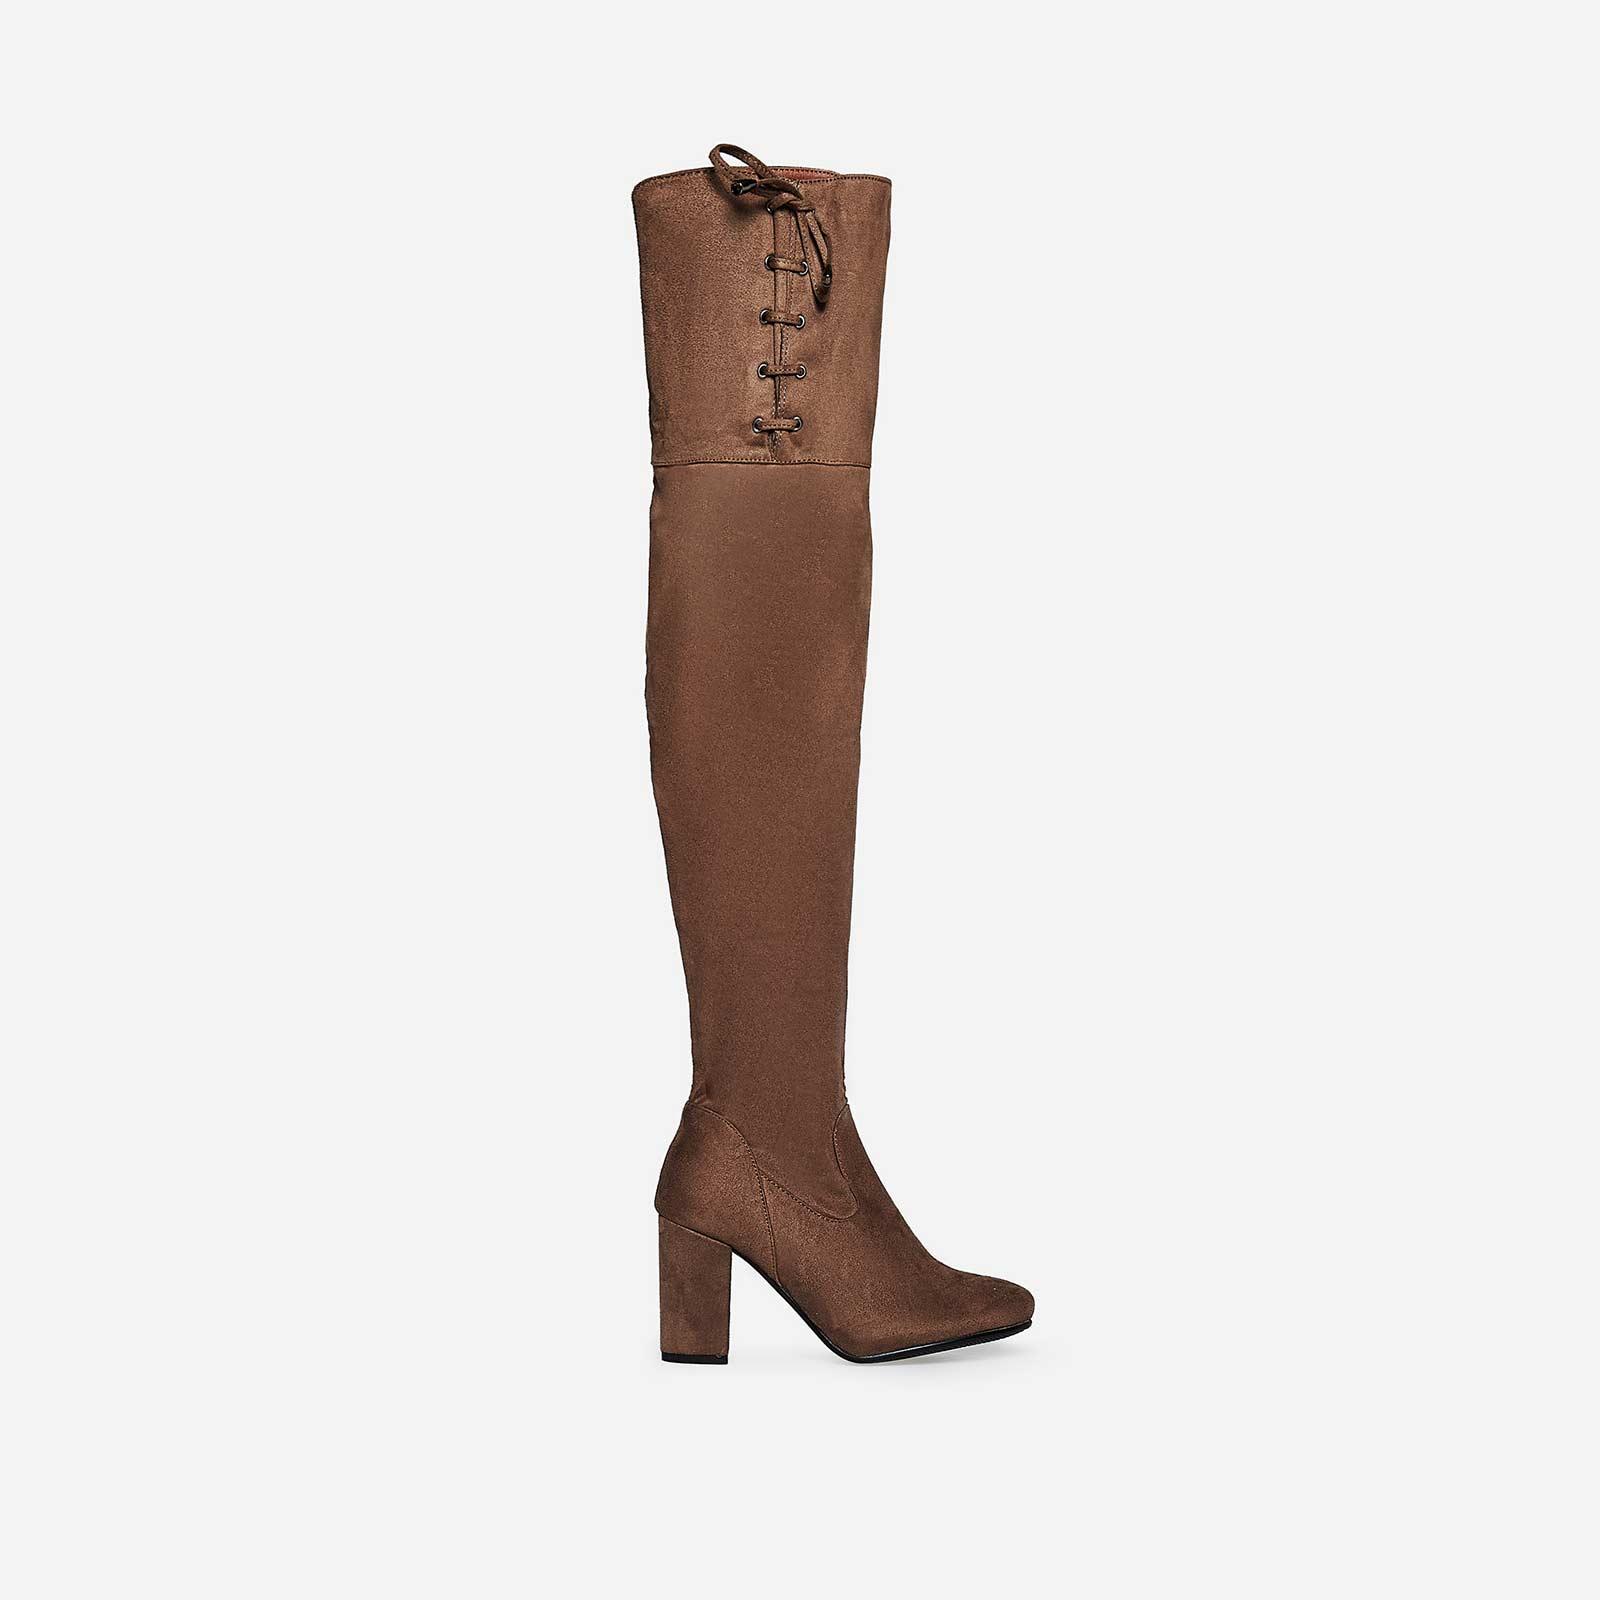 Bristol Thigh High Long Boot In Khaki Faux Suede